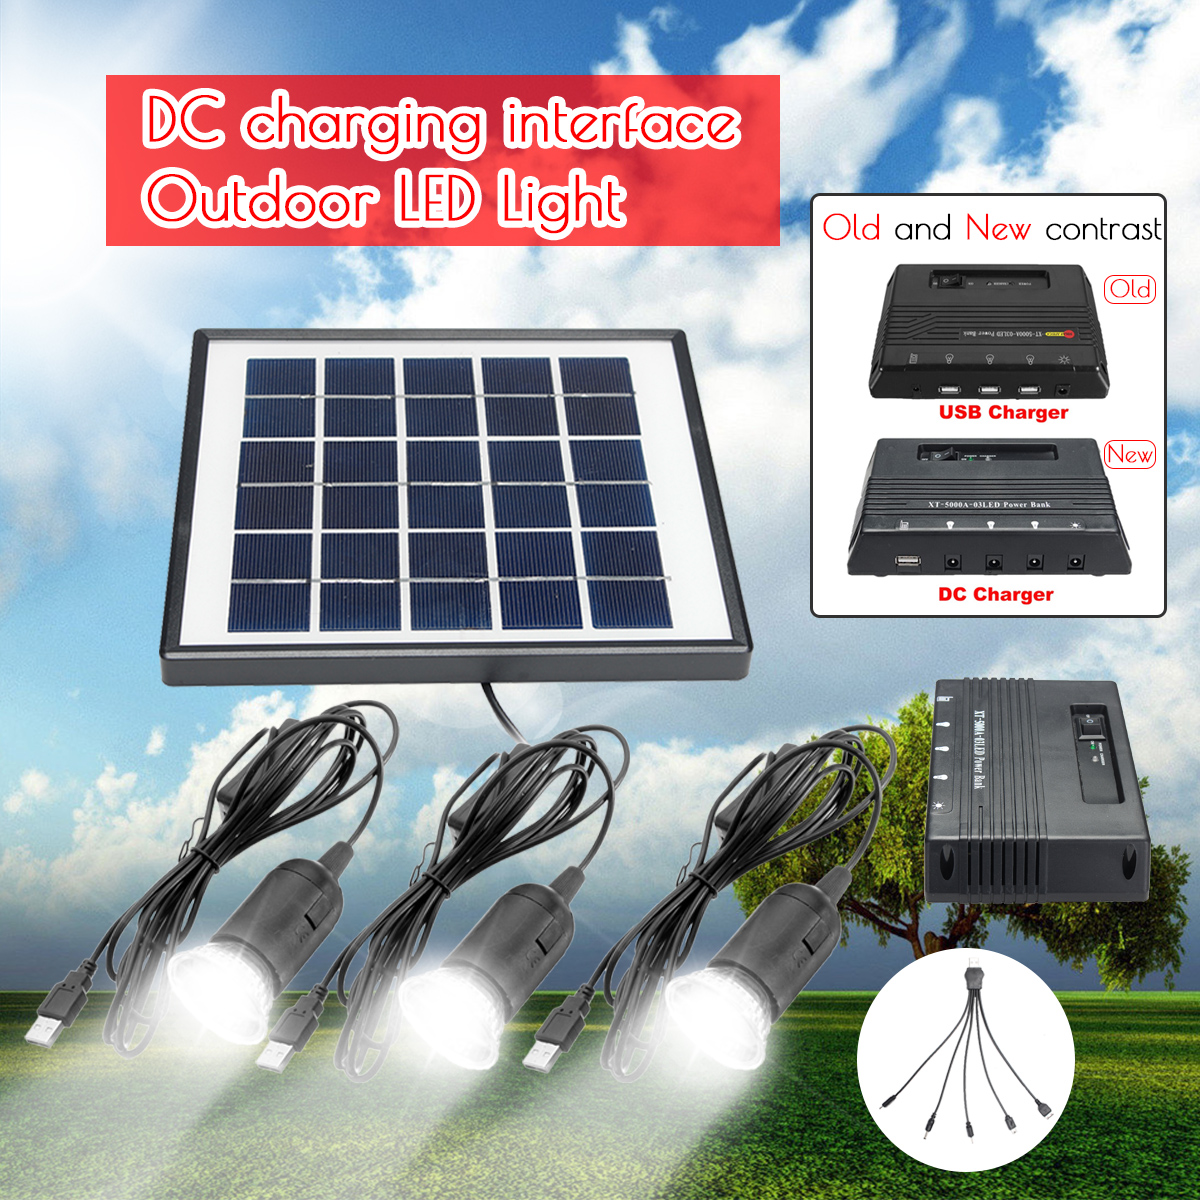 3pcs 1W Solar Lamp LED Garden Light Outdoor Lampe Solaire + 6V 4W Solar Panel + 5000mAh DC Power Bank For Outdoor Camping